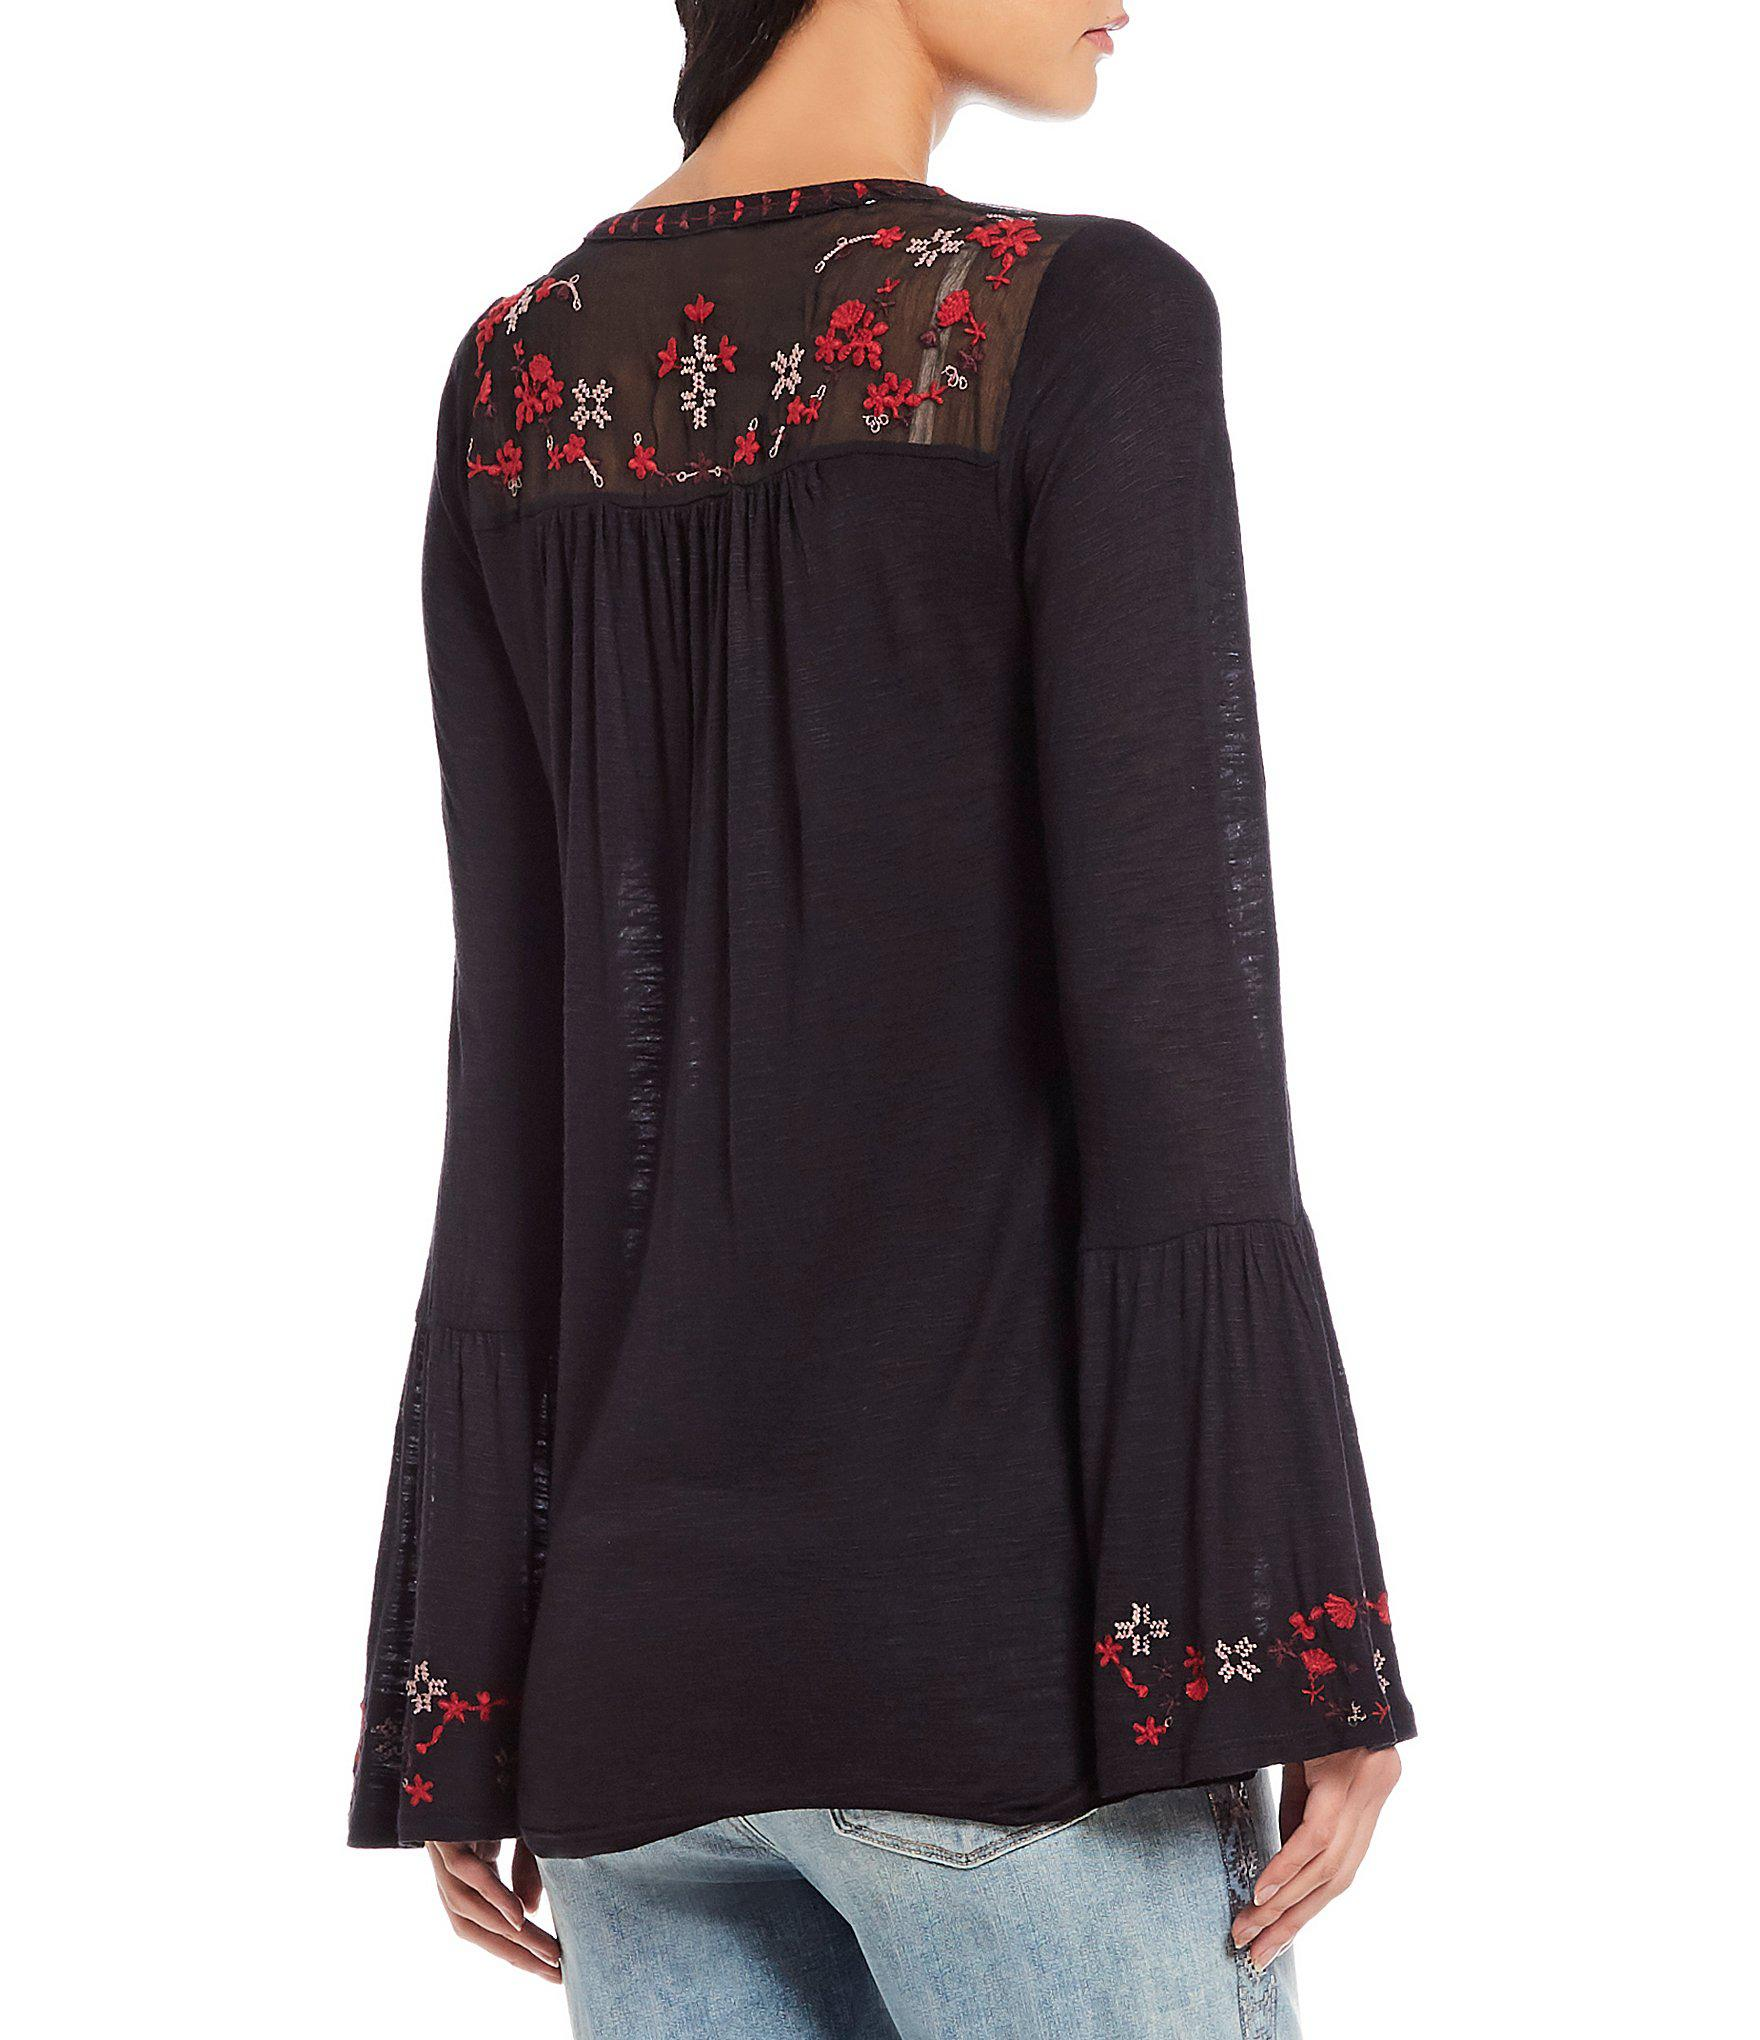 59e565f244e2 Lucky Brand - Black Floral Embroidered Yoke Top - Lyst. View fullscreen